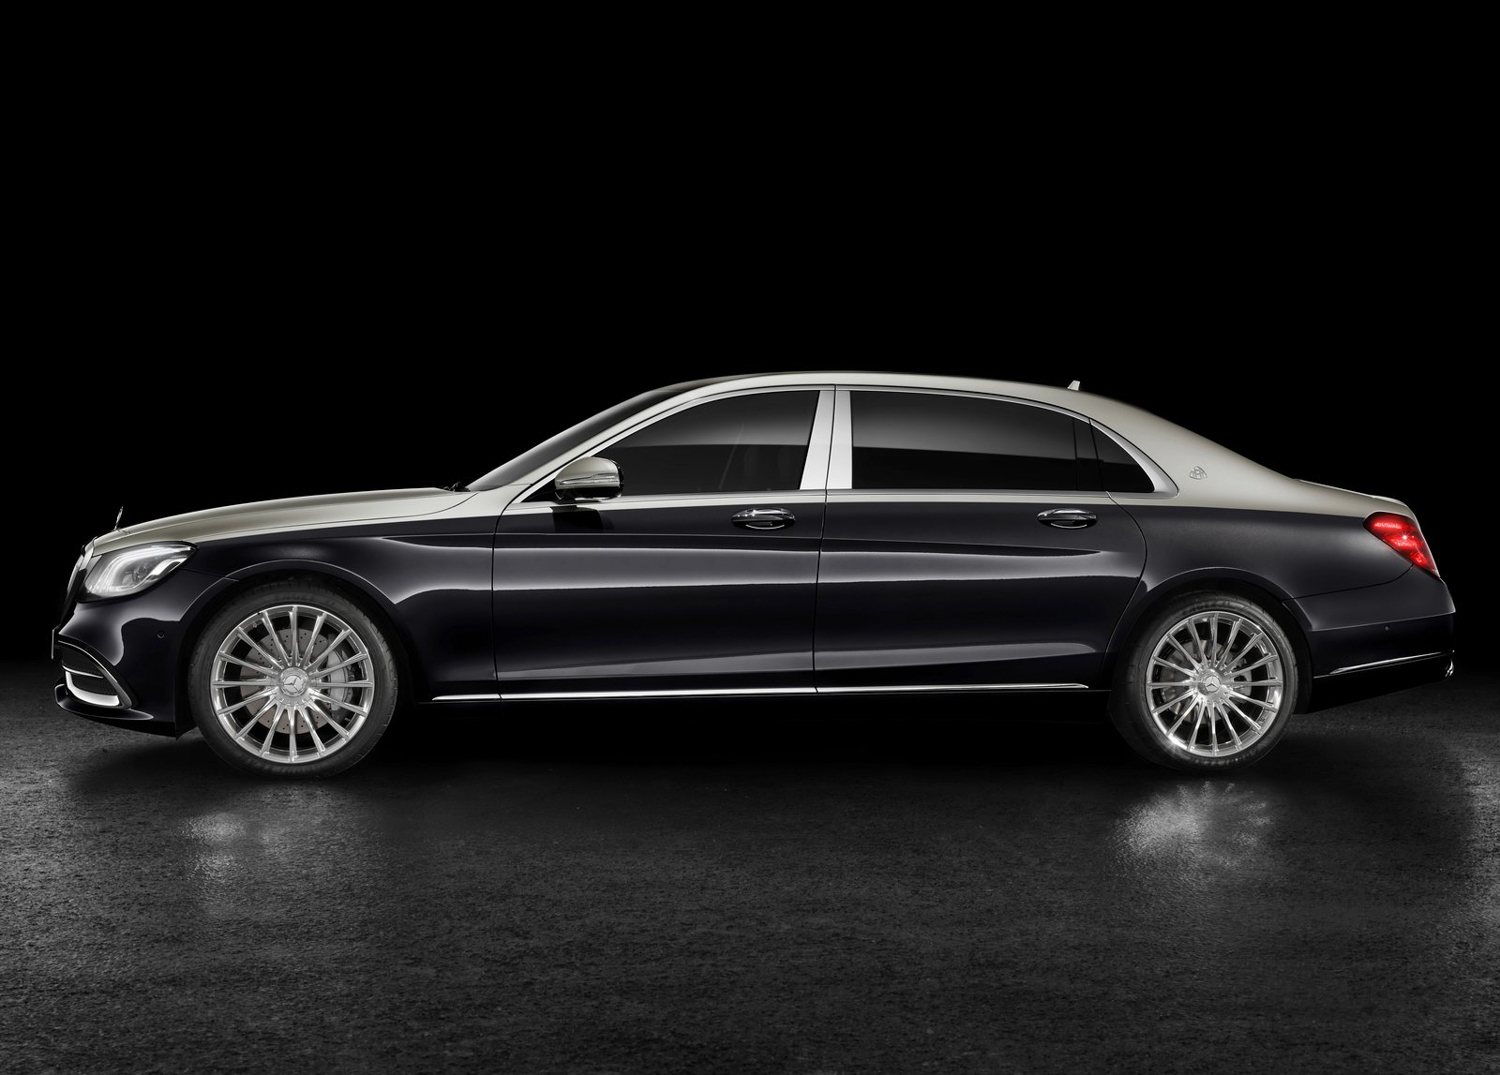 2019 Mercedes-Benz S-Class Maybach side